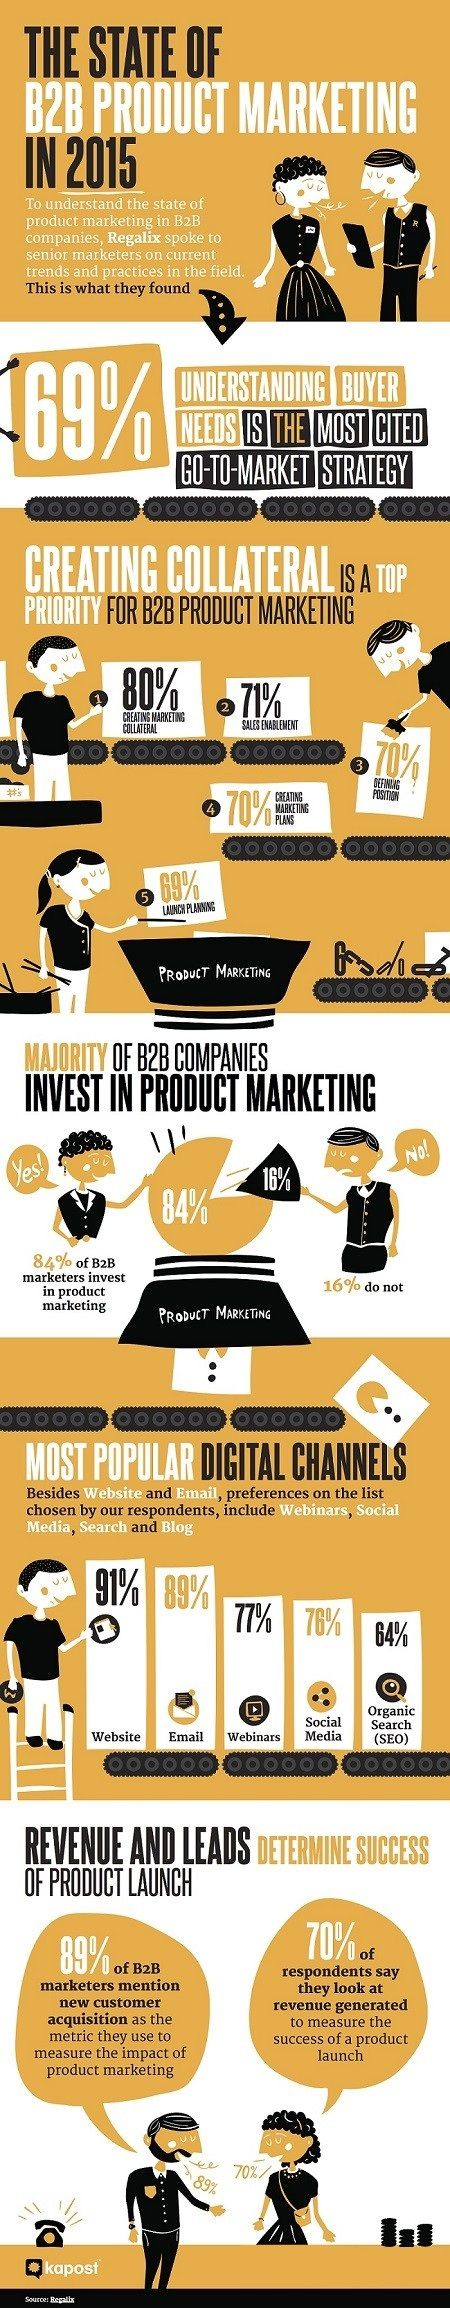 The State Of B2b Product Marketing [infographic]